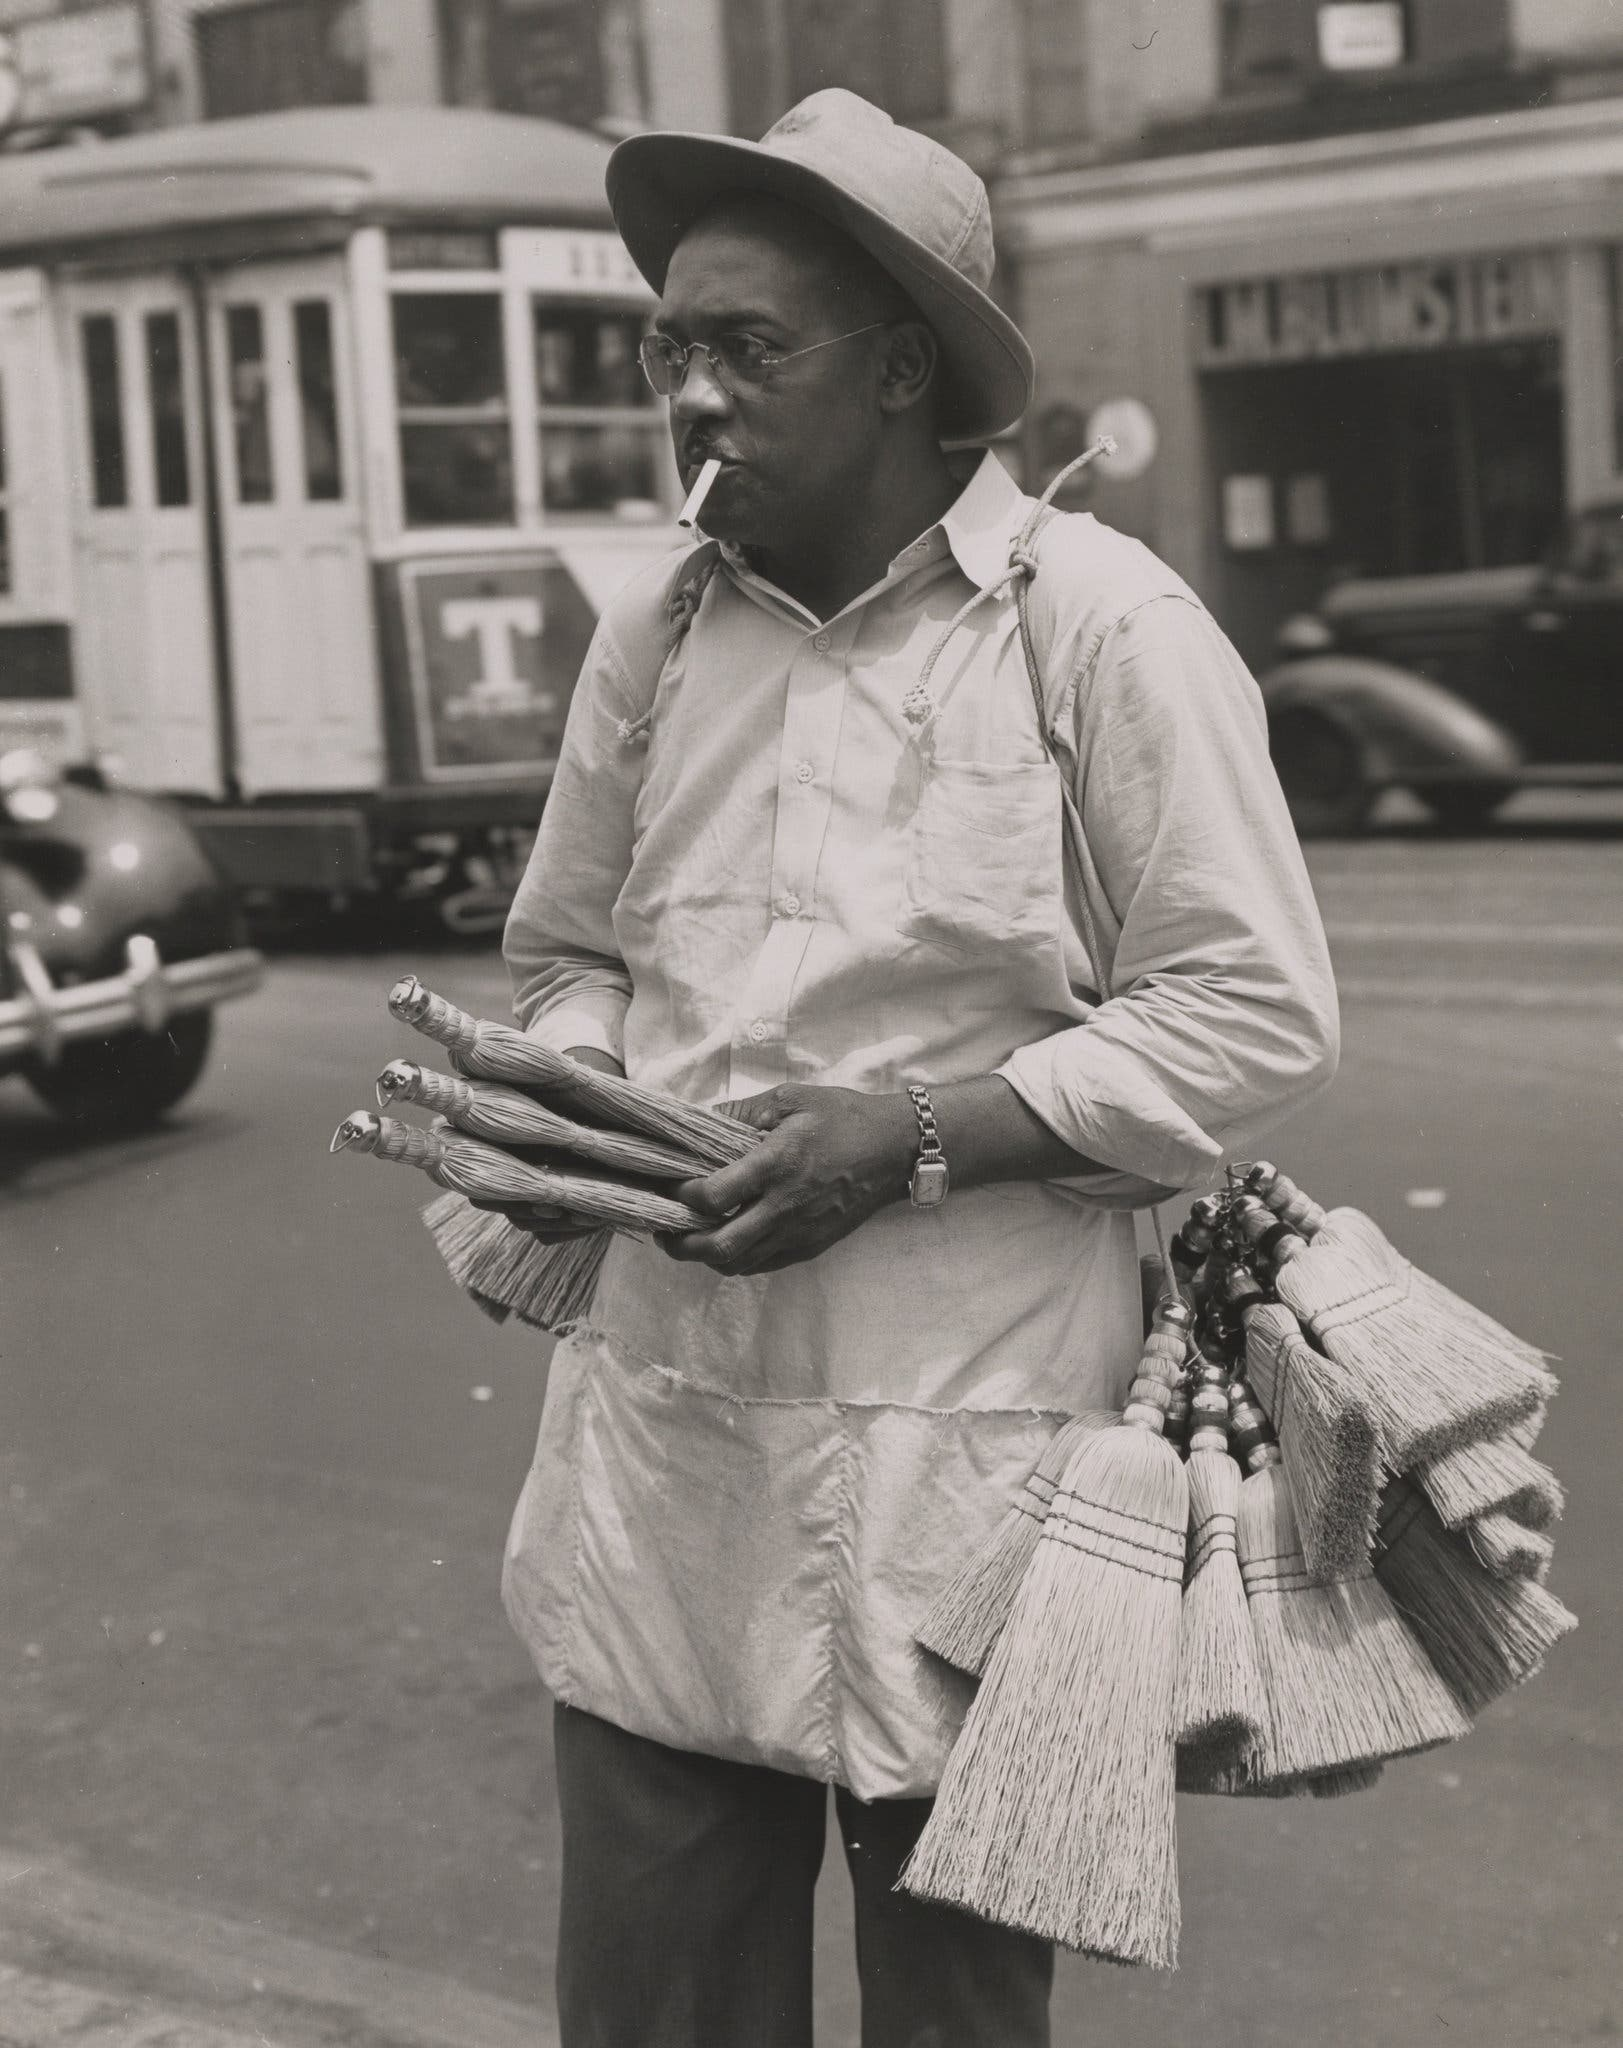 New York City 1940s 1950s A whisk broom salesman on 125th Street. 1946.